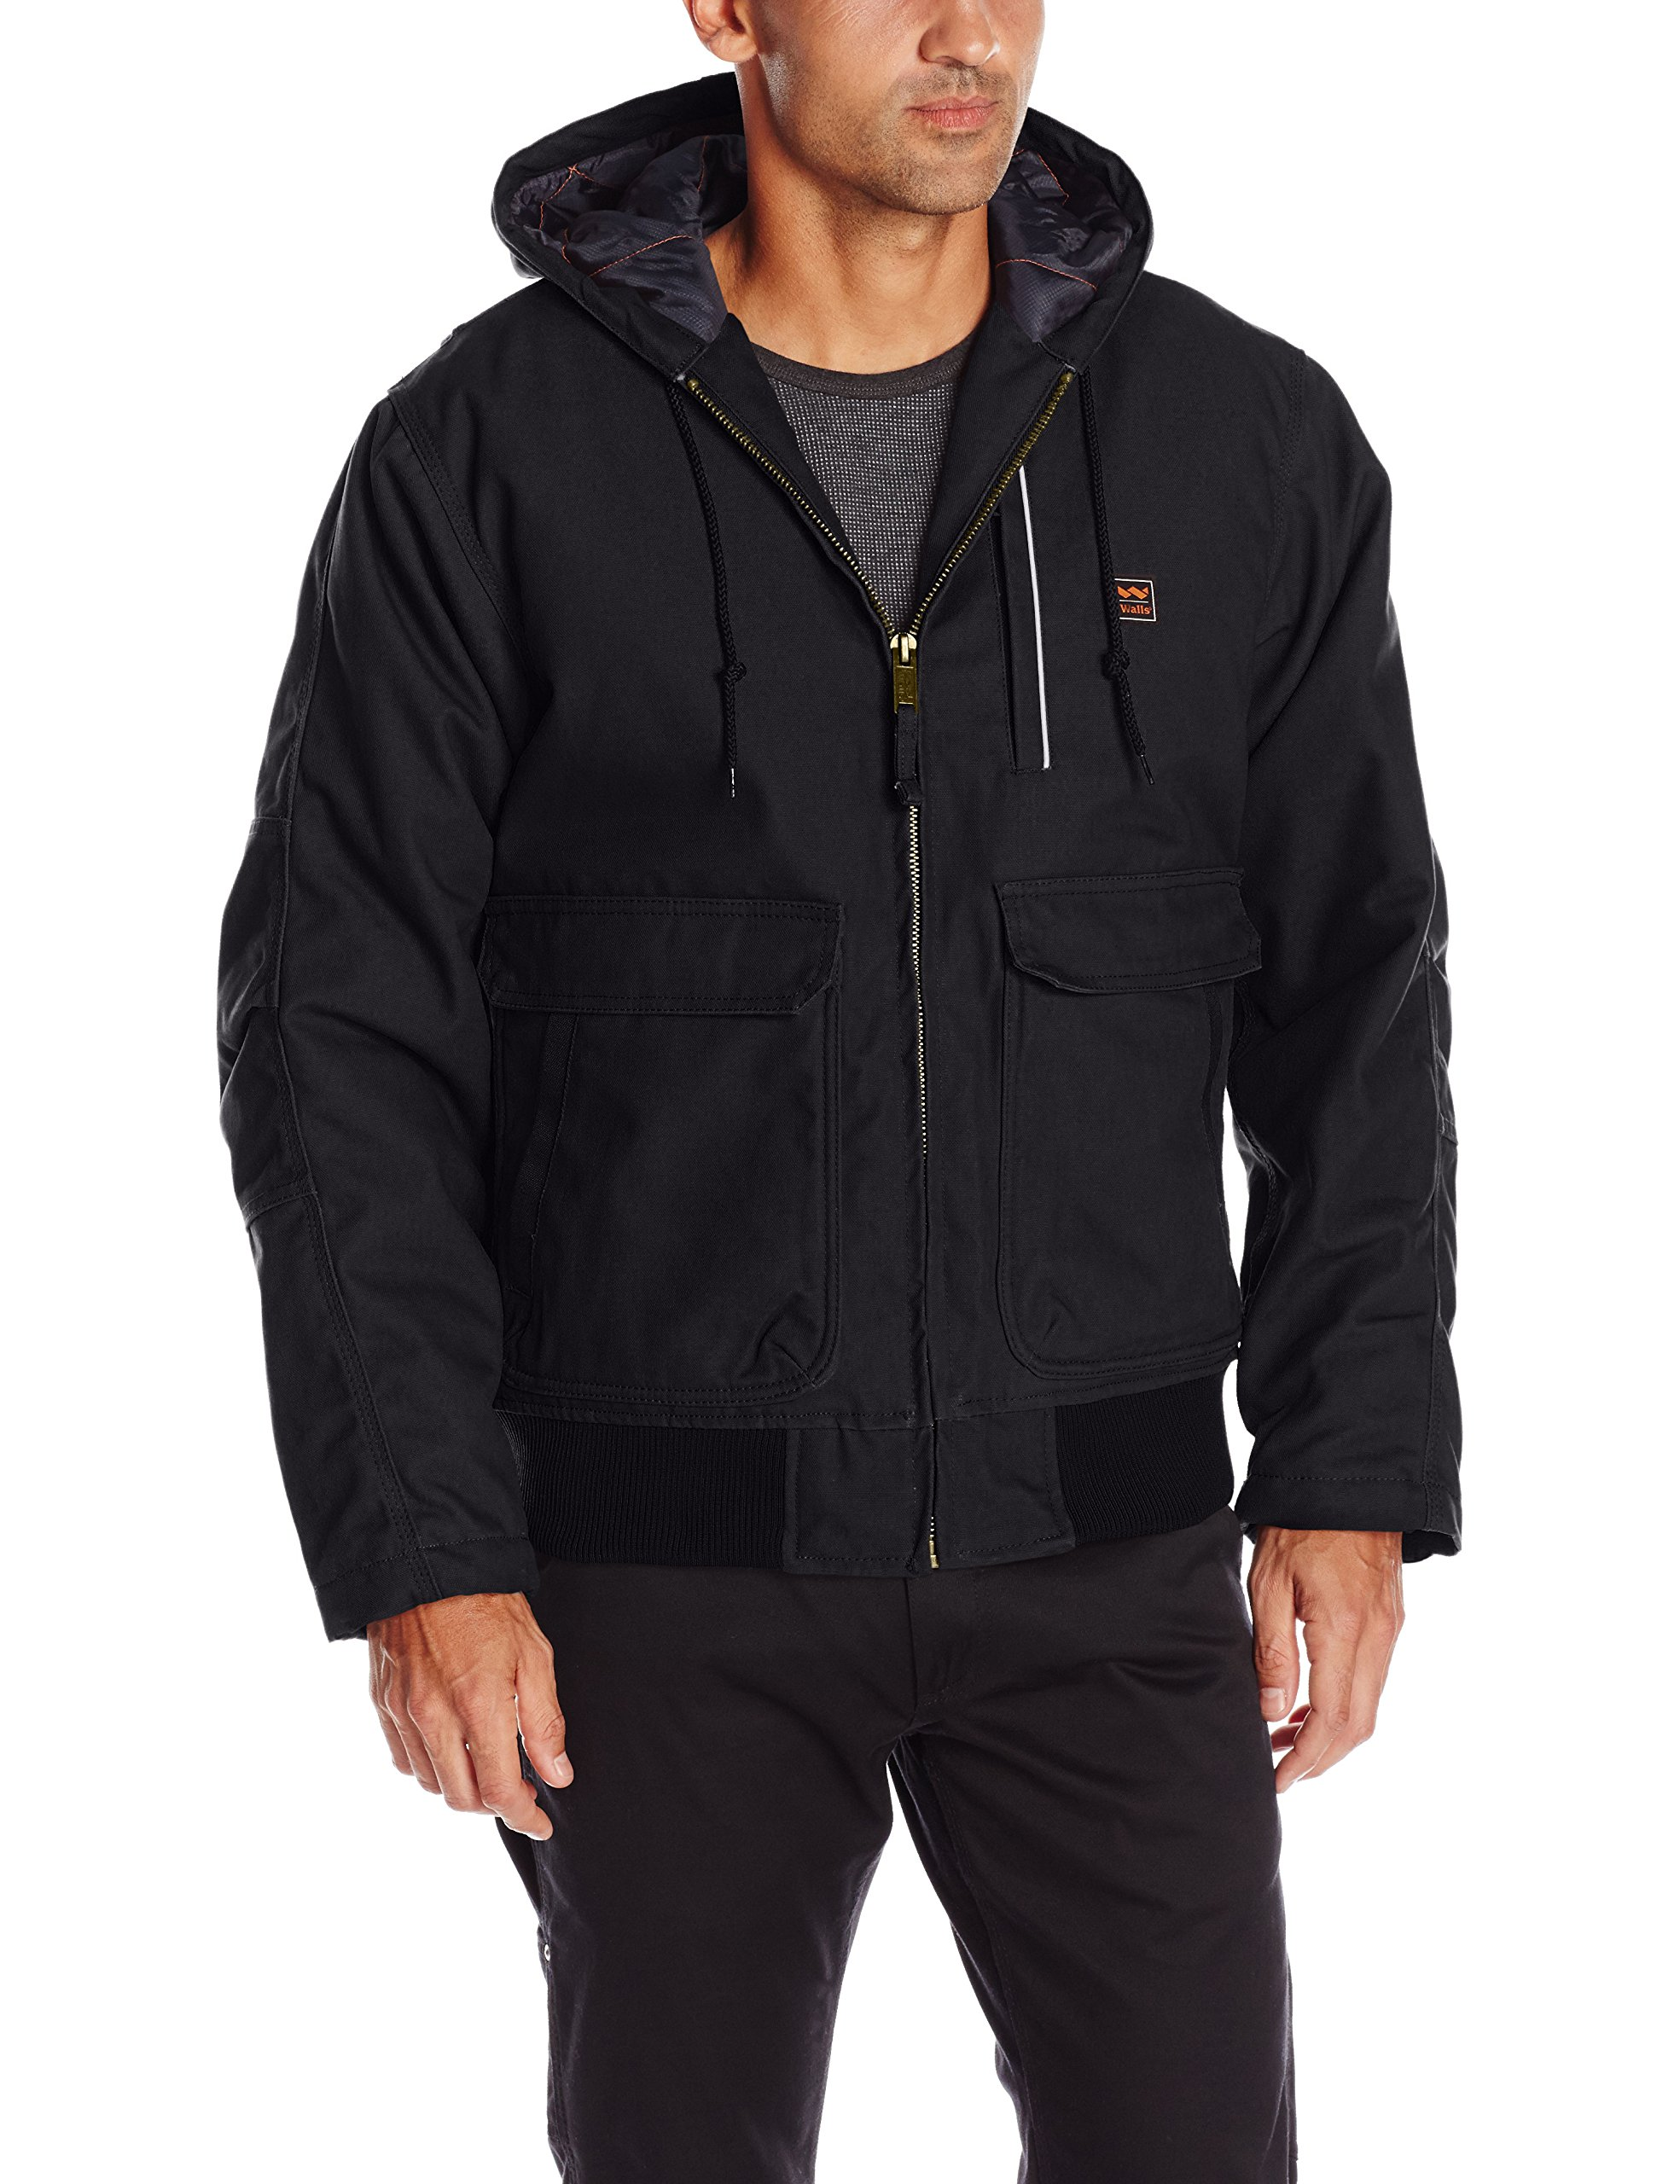 Walls Men's Lancaster Blizzard Pruf Hooded Jacket, Midnight Black, X-Large by Walls (Image #1)